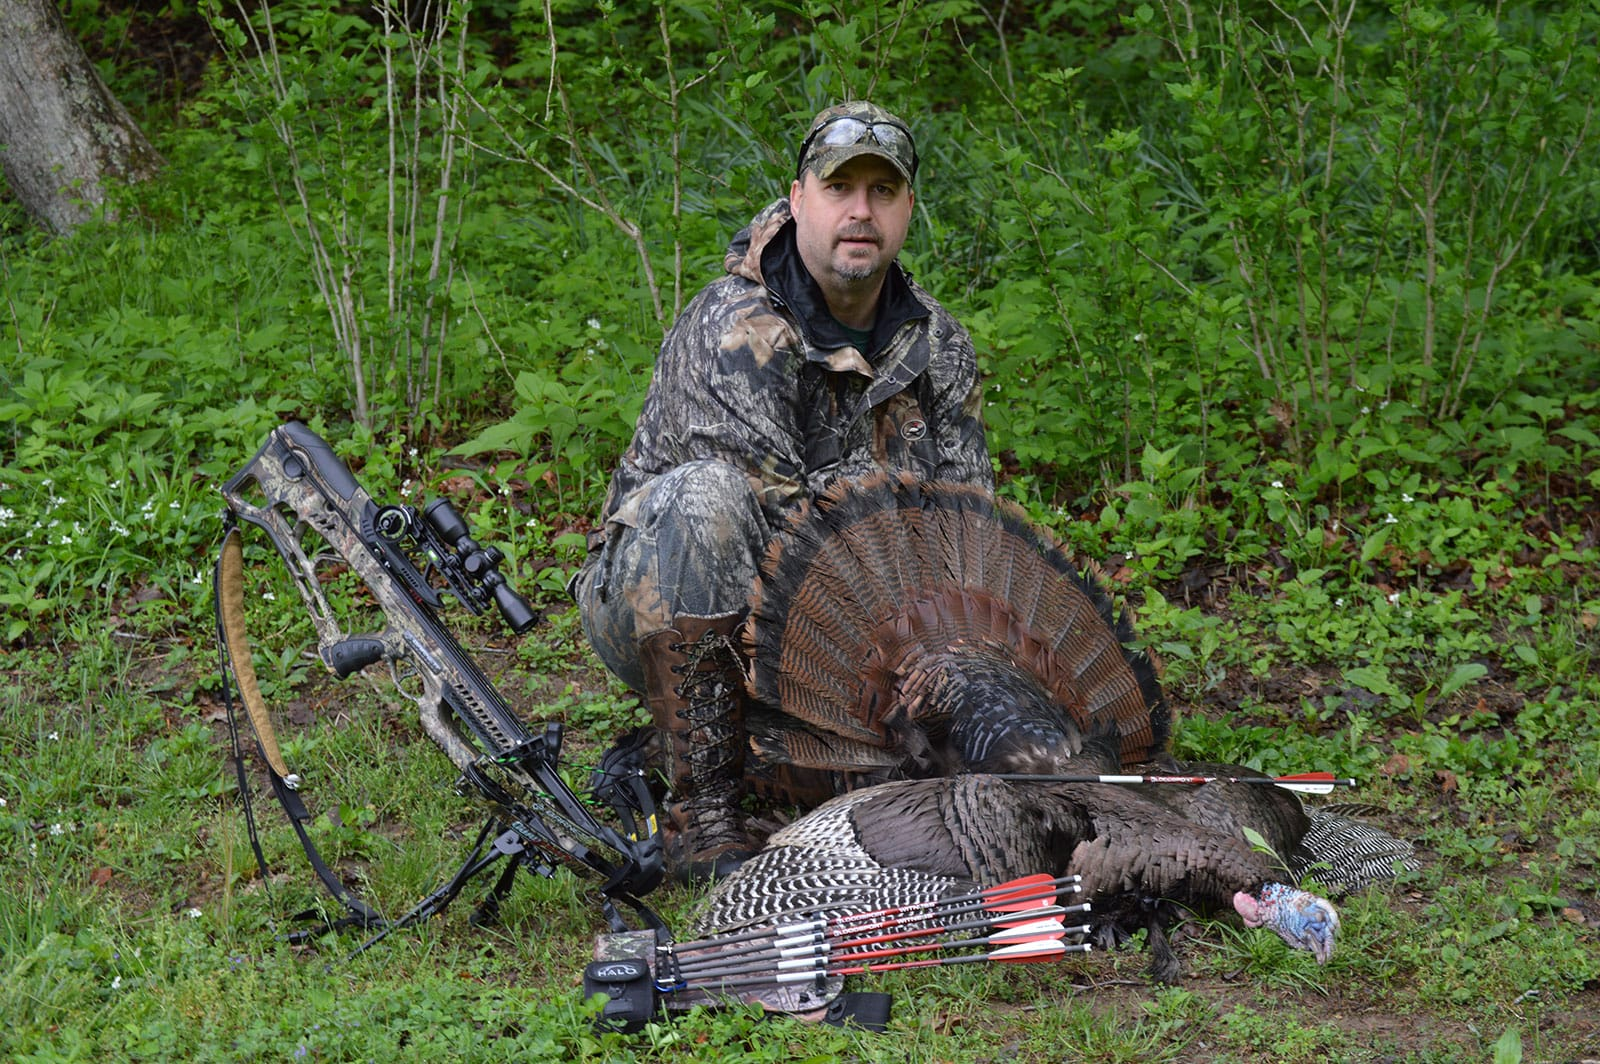 Turkey with Crossbow